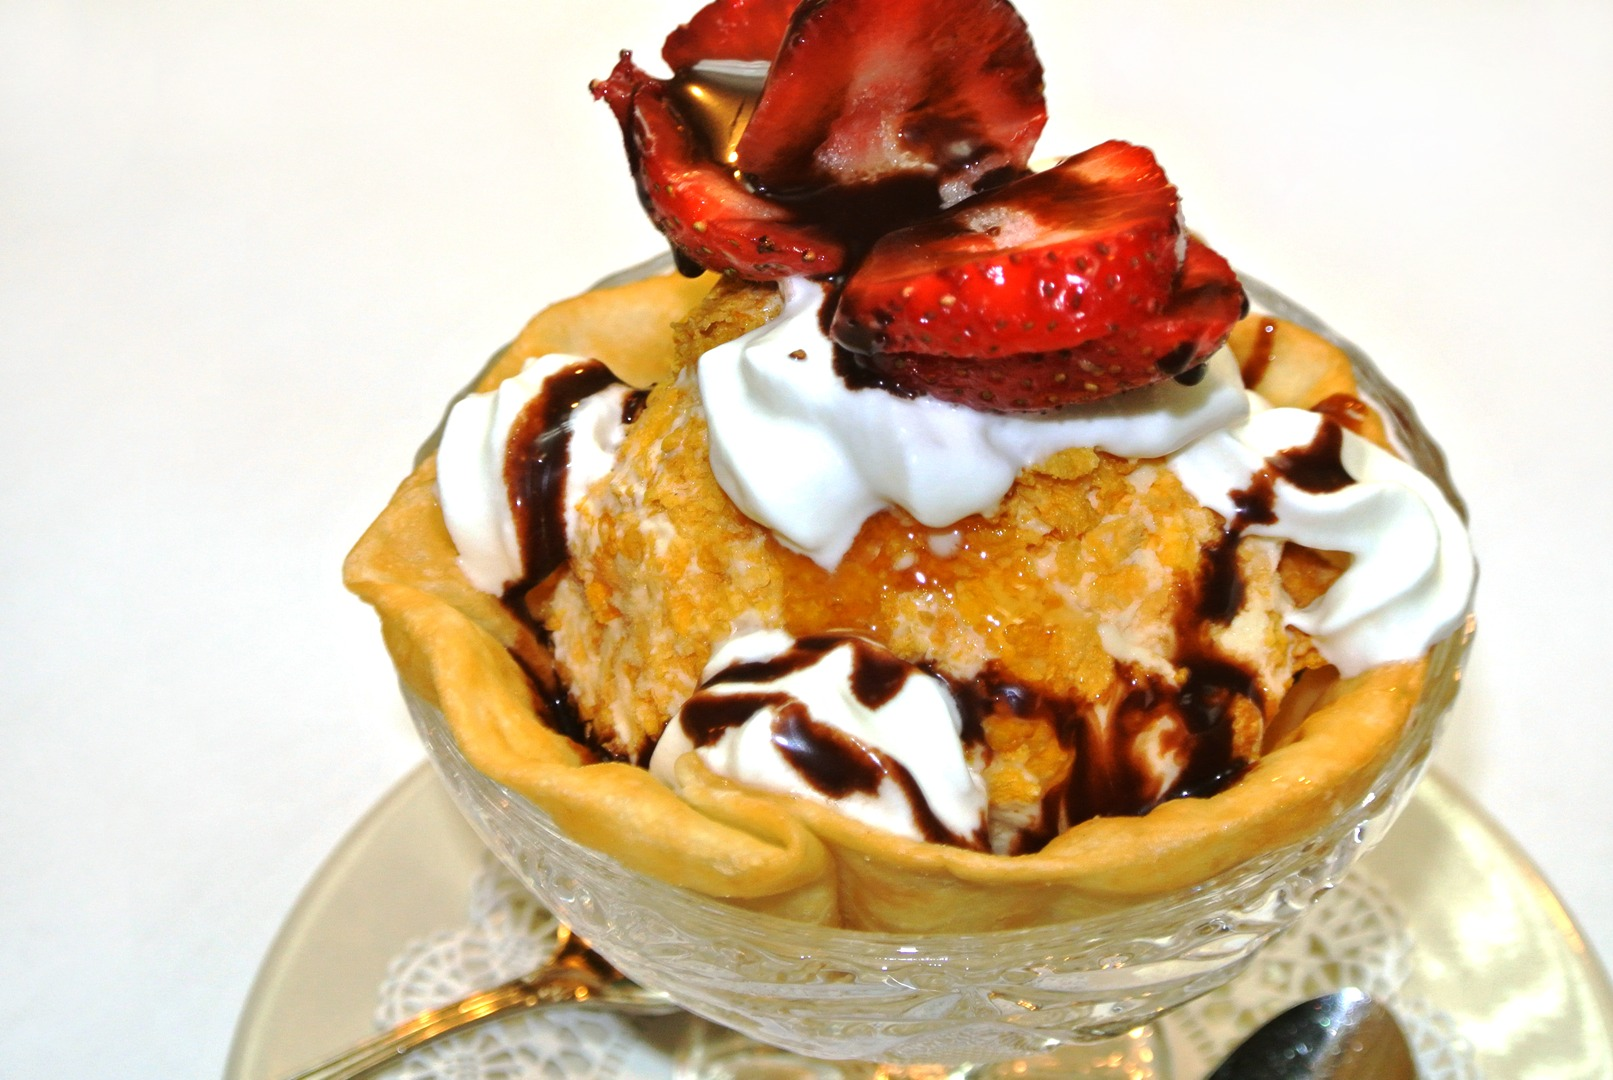 Fried ice cream topped with whipped cream and strawberries with a chocolate drizzle